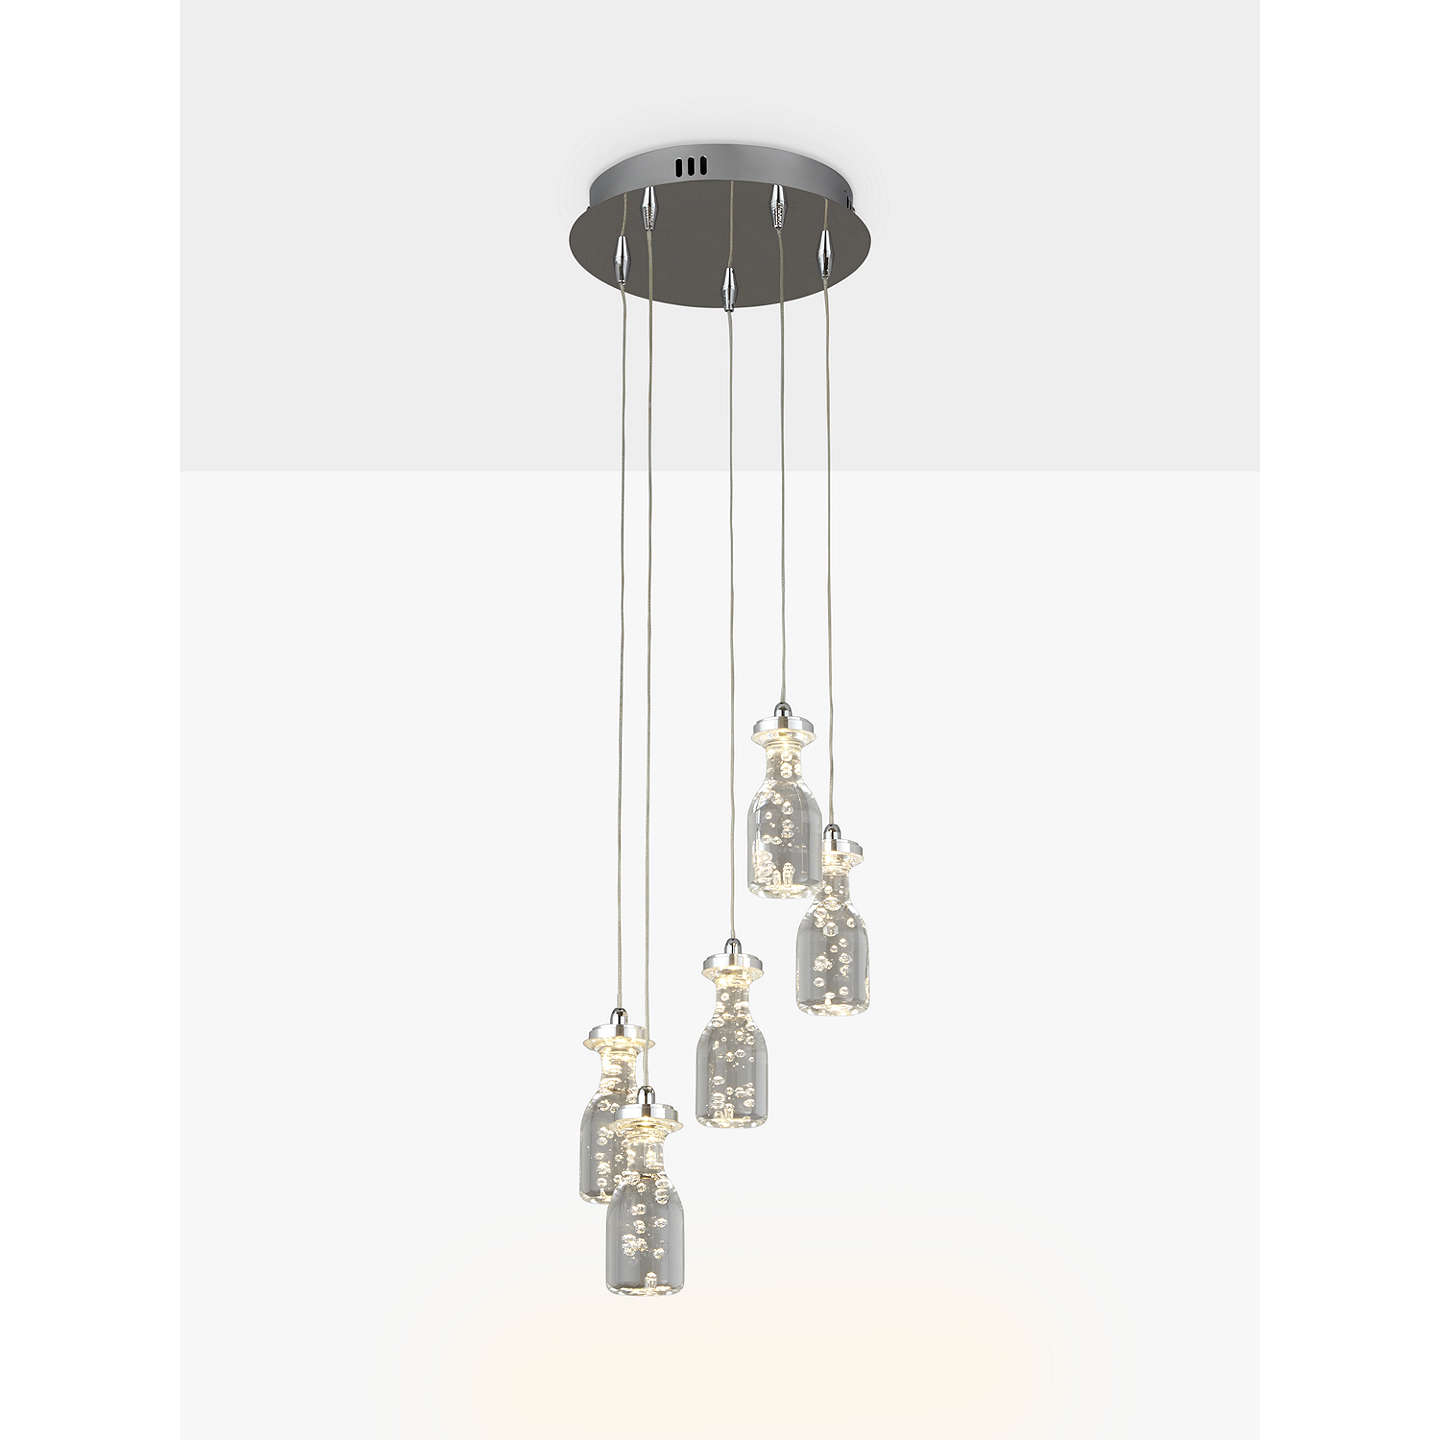 John lewis giovanni bubble 5 cluster ceiling light at john lewis buyjohn lewis giovanni bubble 5 cluster ceiling light online at johnlewis aloadofball Choice Image